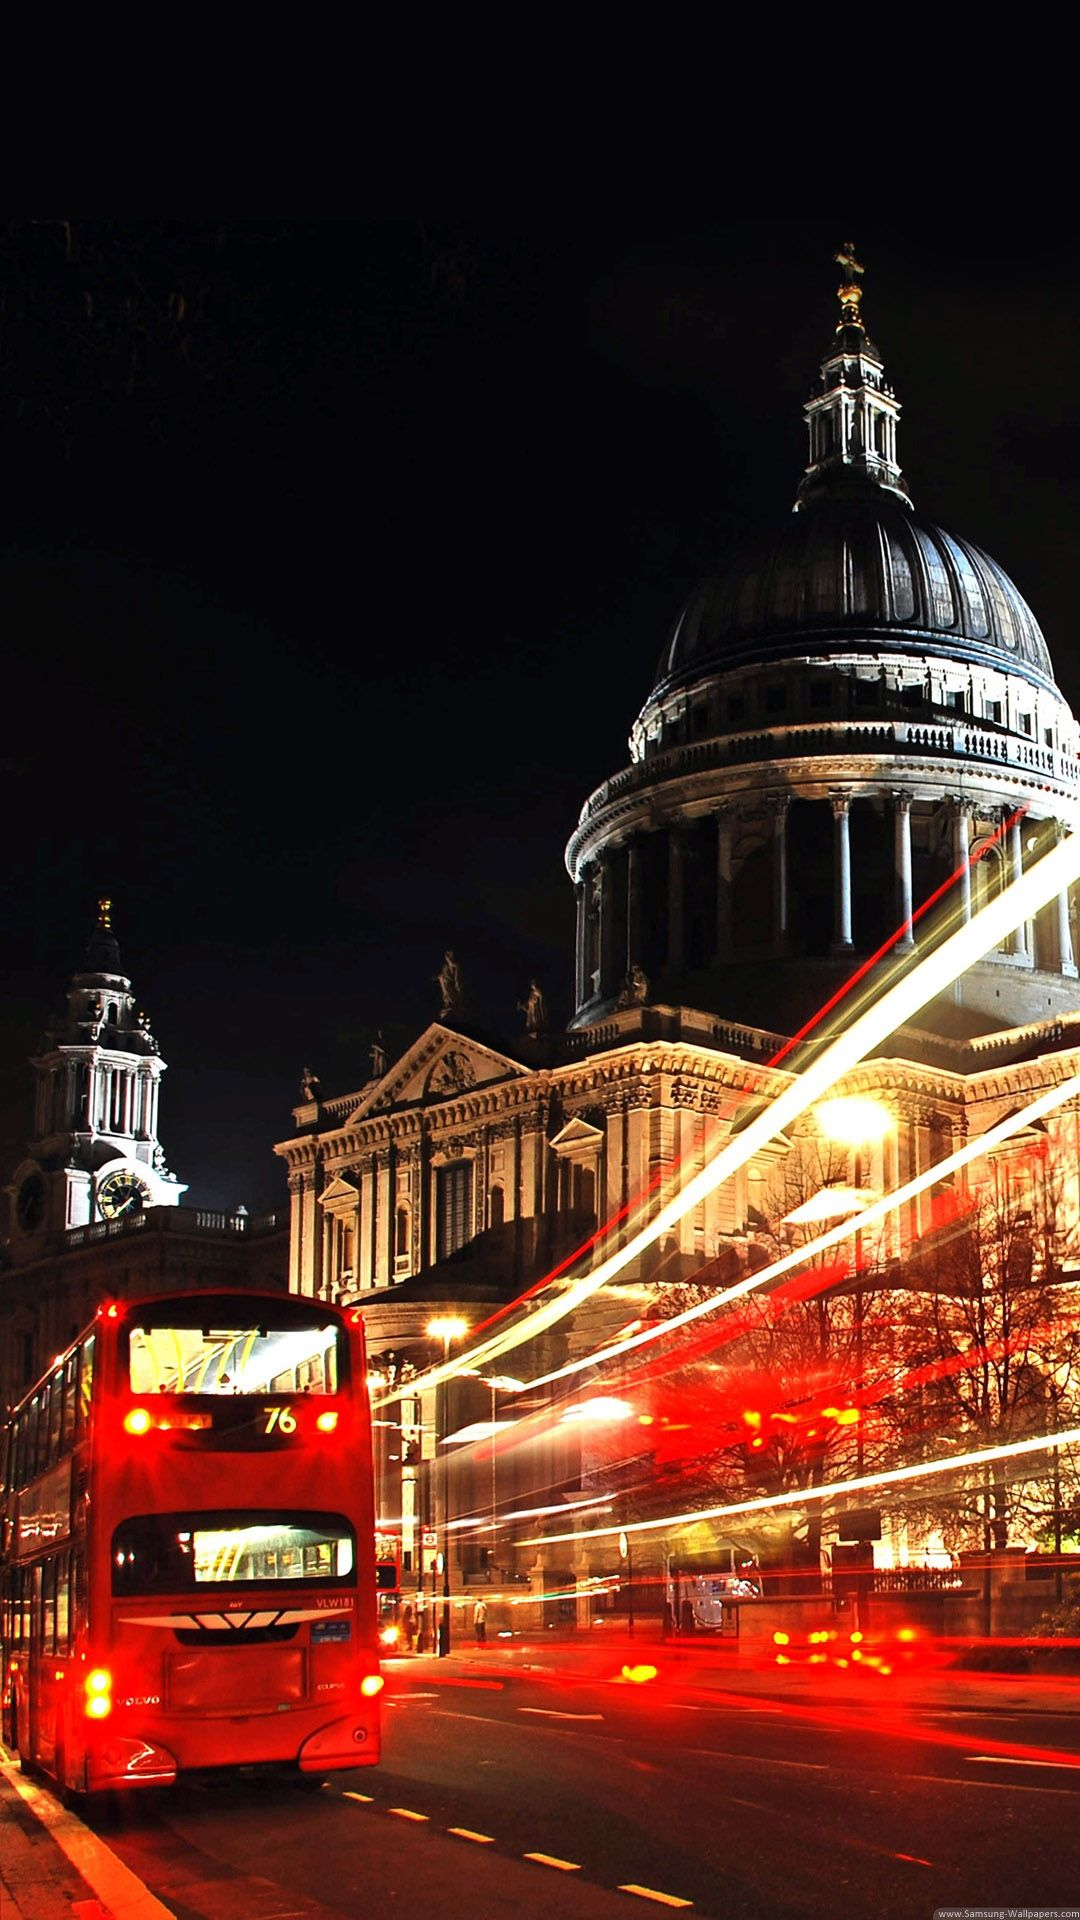 Wallpaper iphone london - London St Paul Cathedral Double Decker Iphone 6 Plus Hd Wallpaper